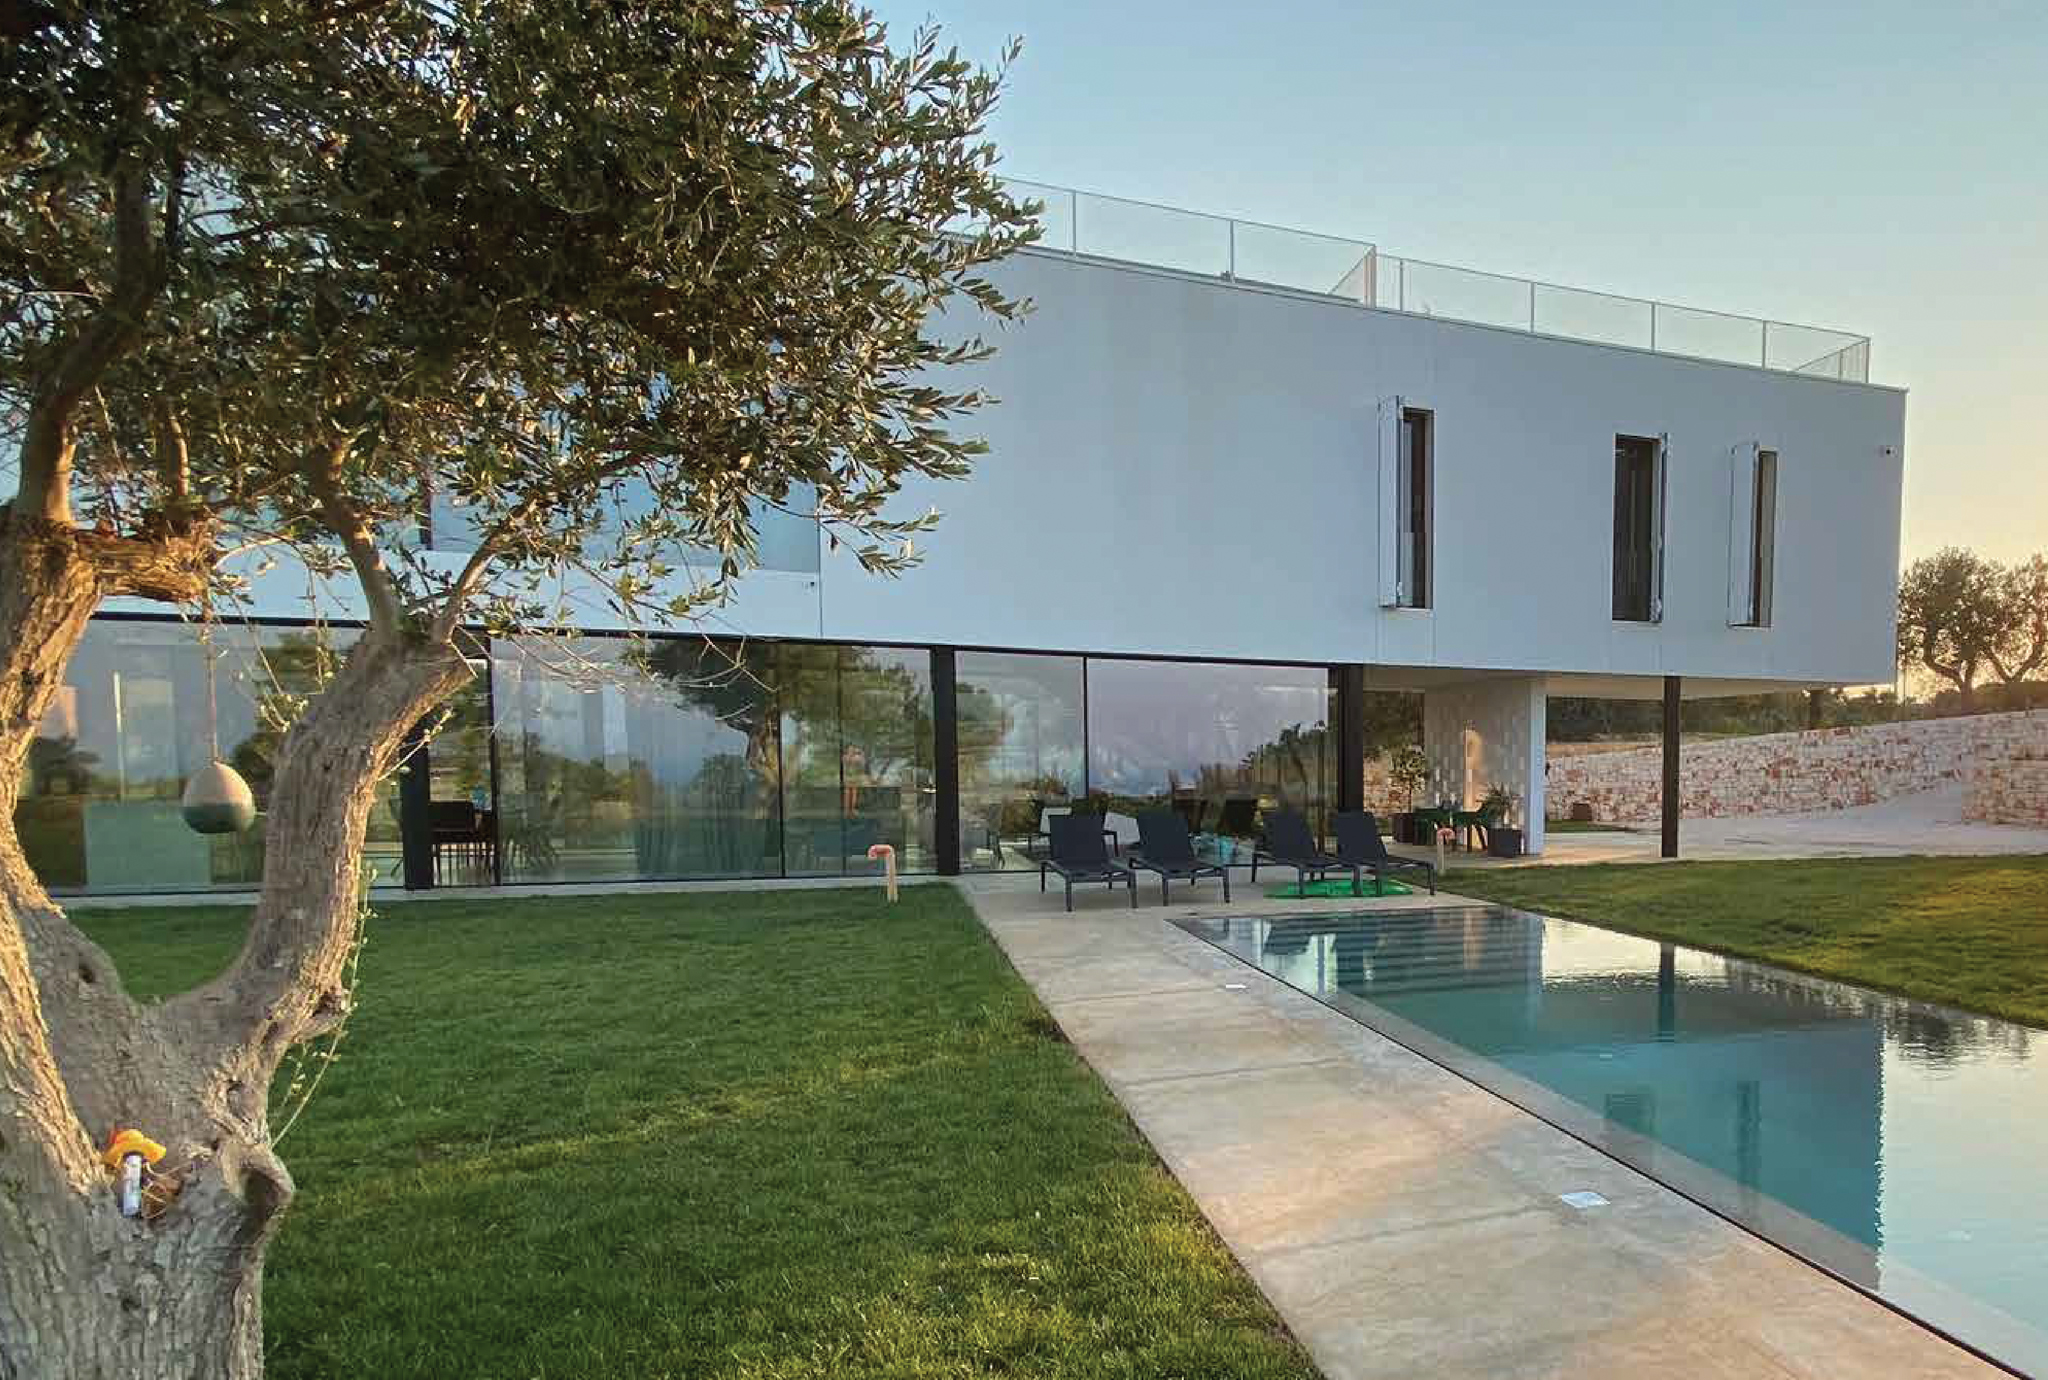 Minimal frame aluminum windows and door systems were used in this contemporary Italian villa for expansive views